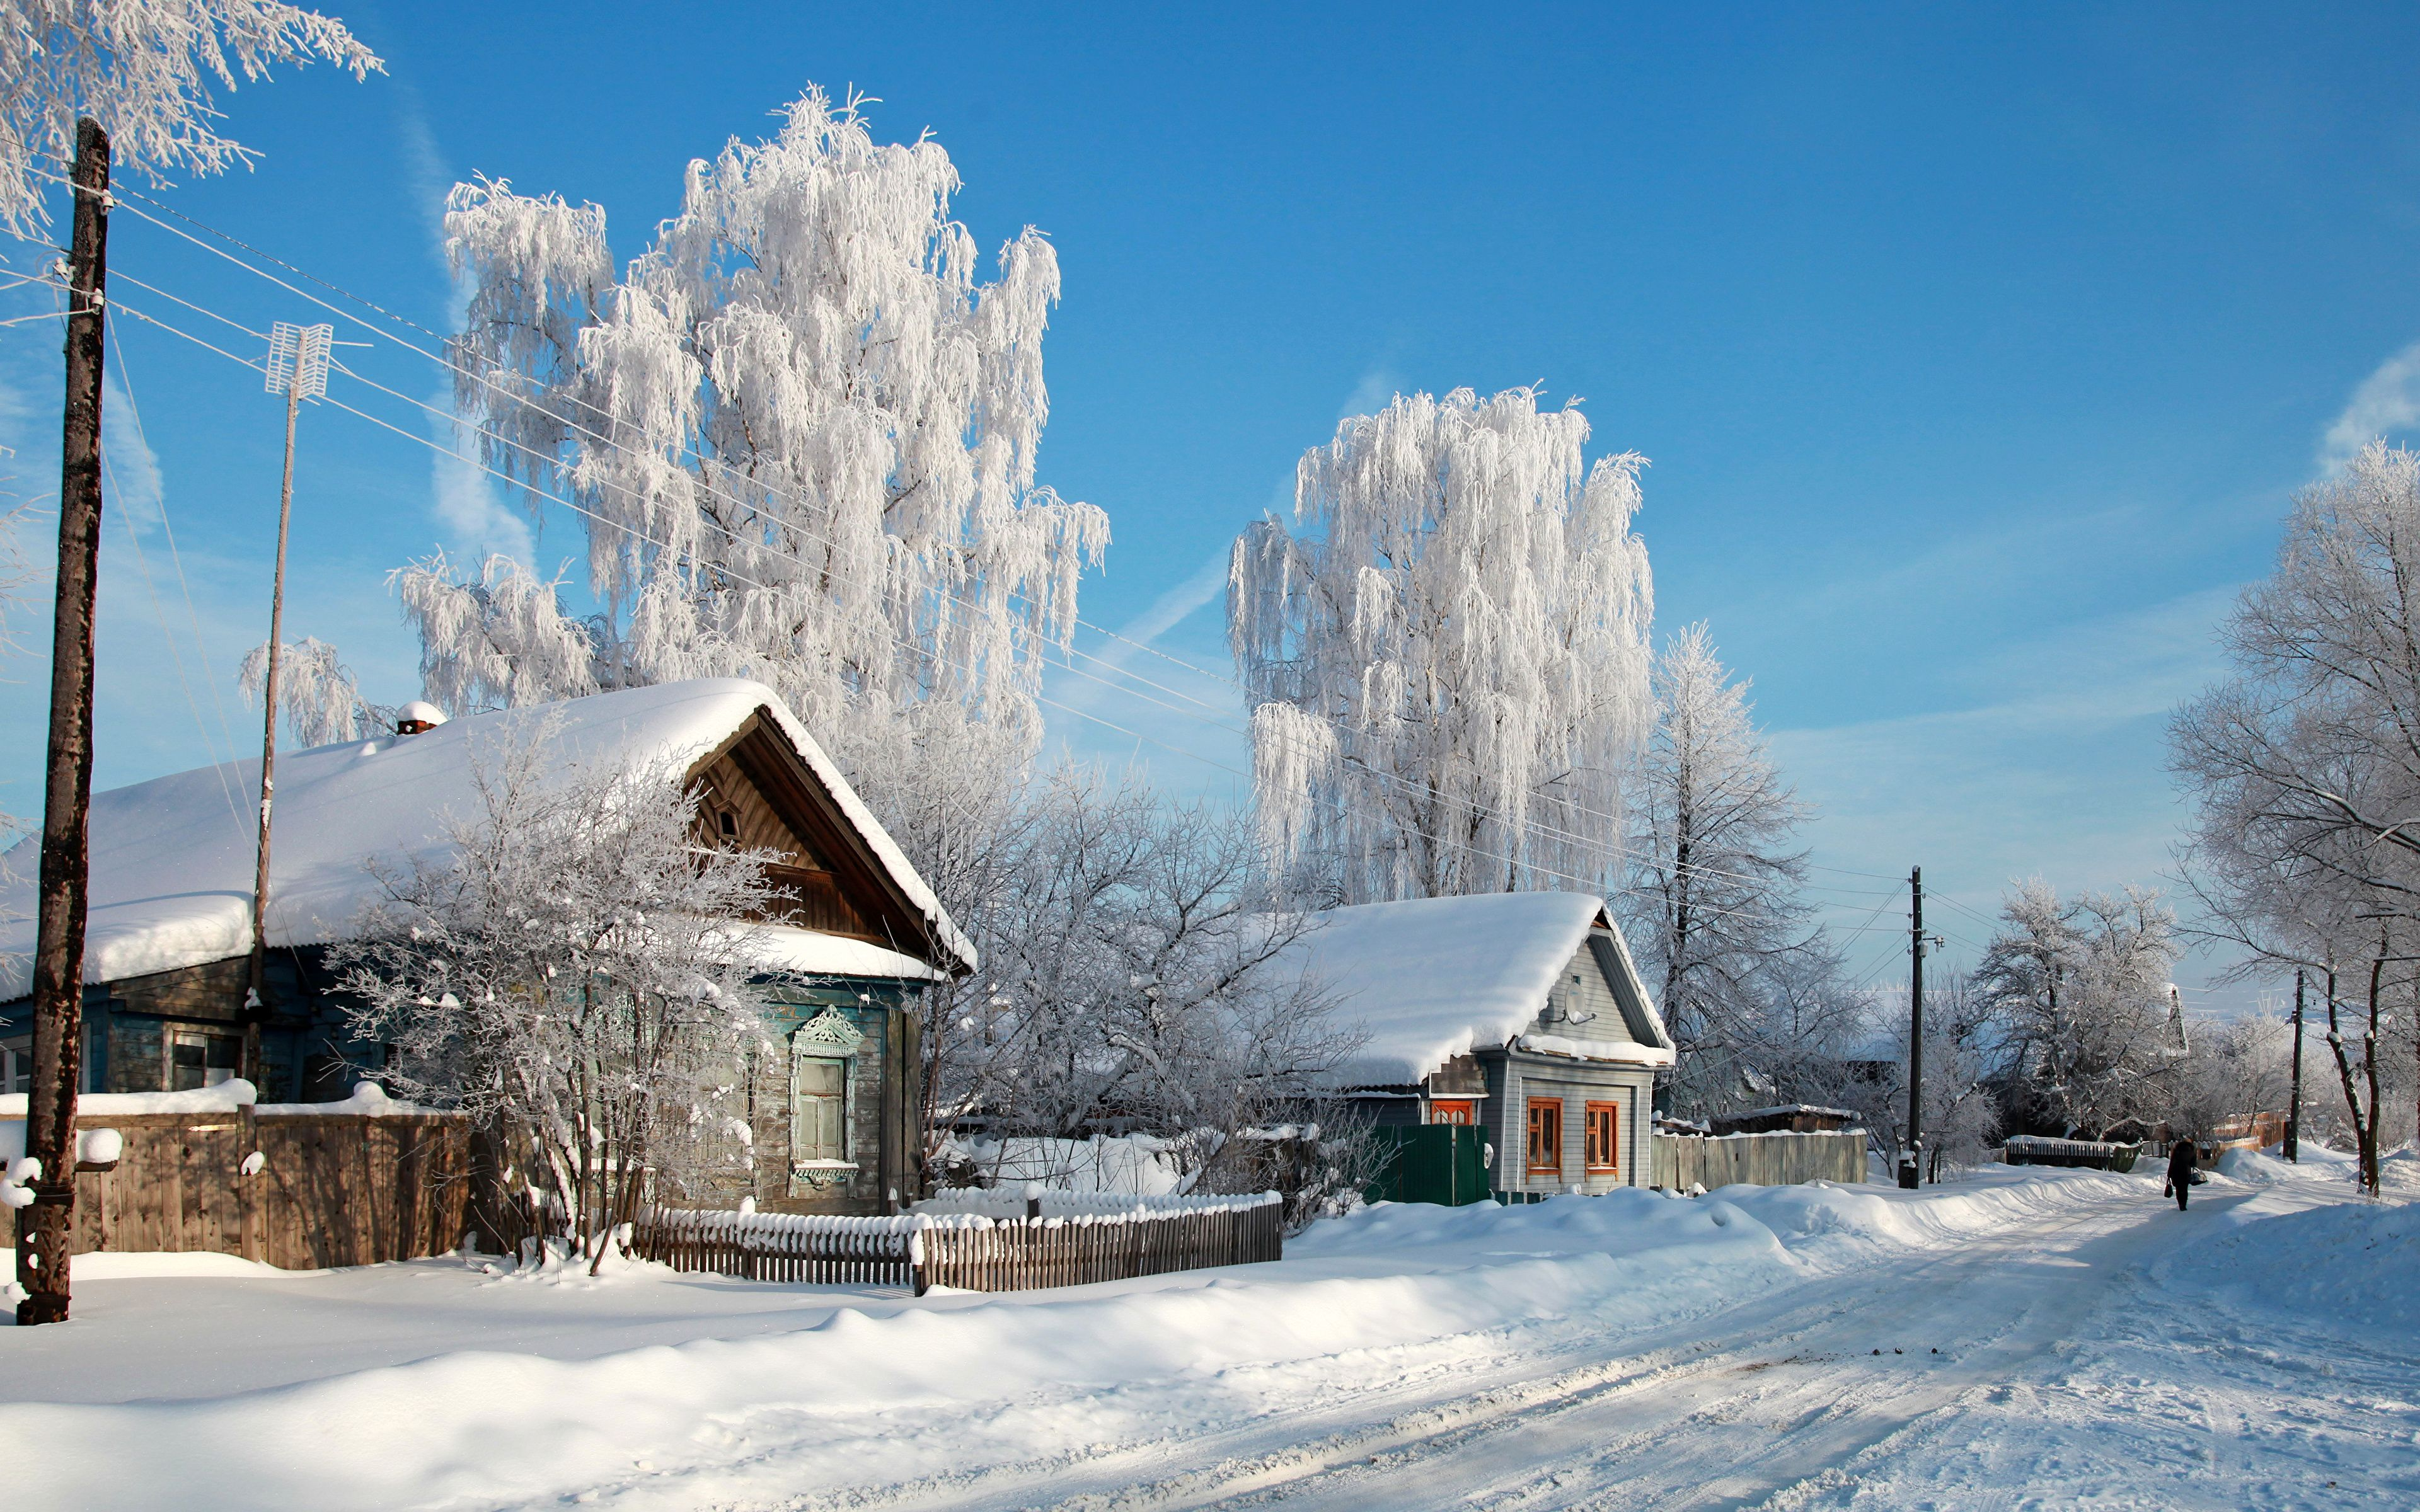 3840x2400 Images Russia Village Nature Winter Snow Trees Cities 3840x2400